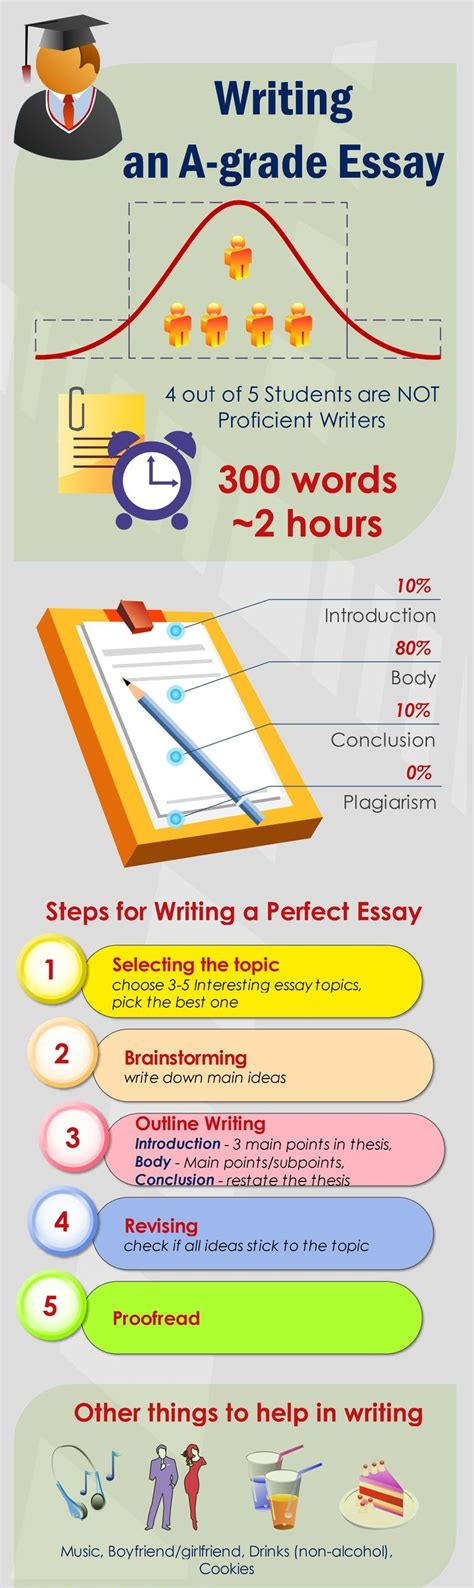 tips for writing dissertation academic help page 2 intel writers